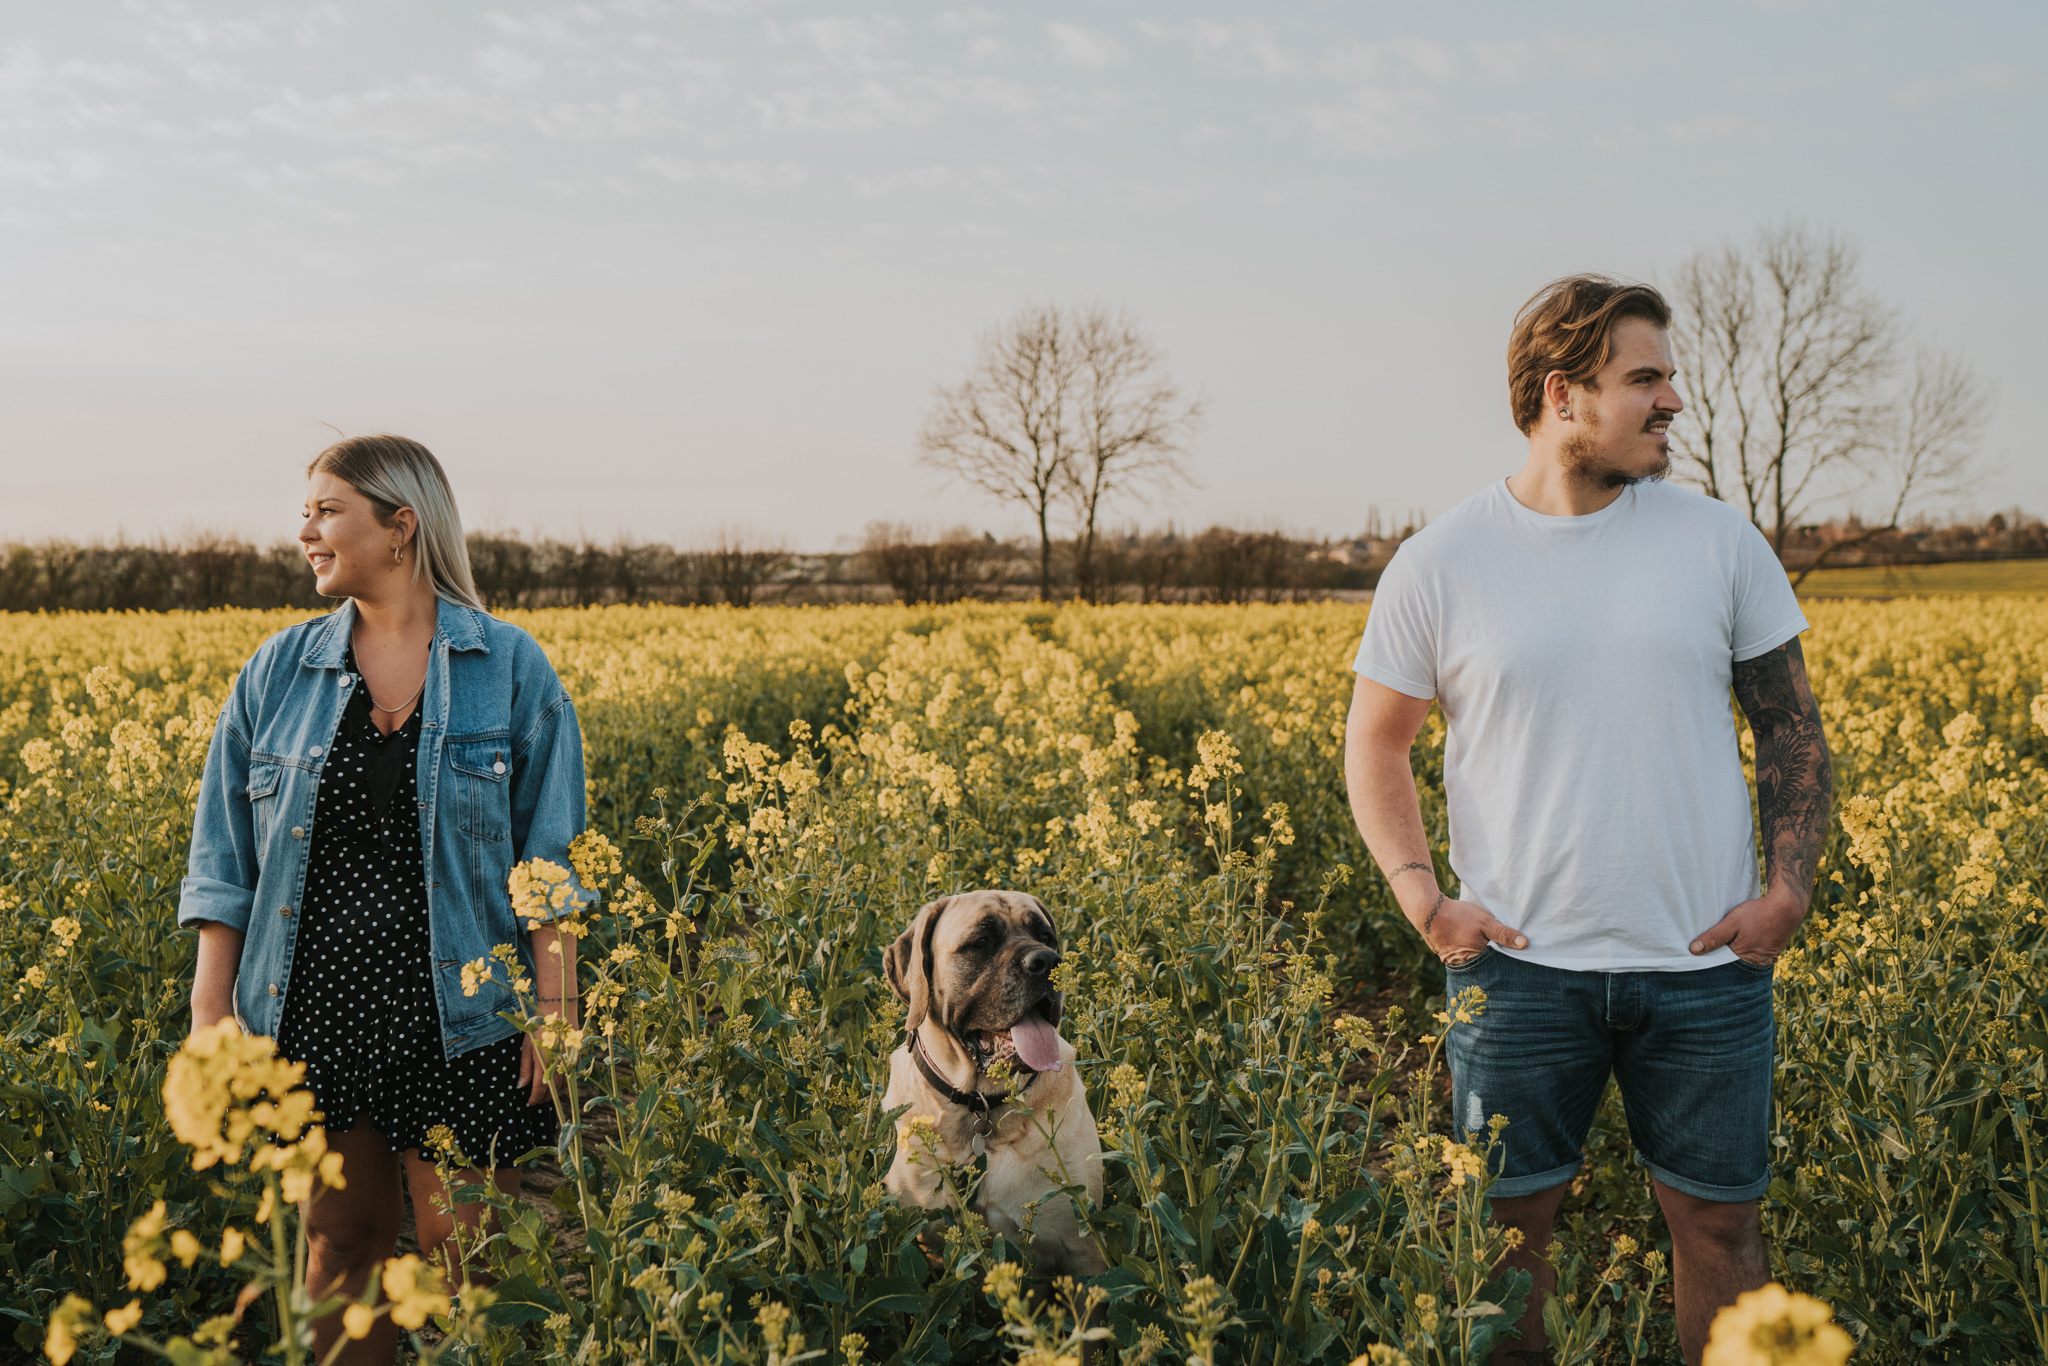 chloe-dan-pre-wedding-engagement-session-countryside-grace-elizabeth-colchester-essex-alternative-wedding-lifestyle-photographer-suffolk-norfolk-devon (19 of 50).jpg